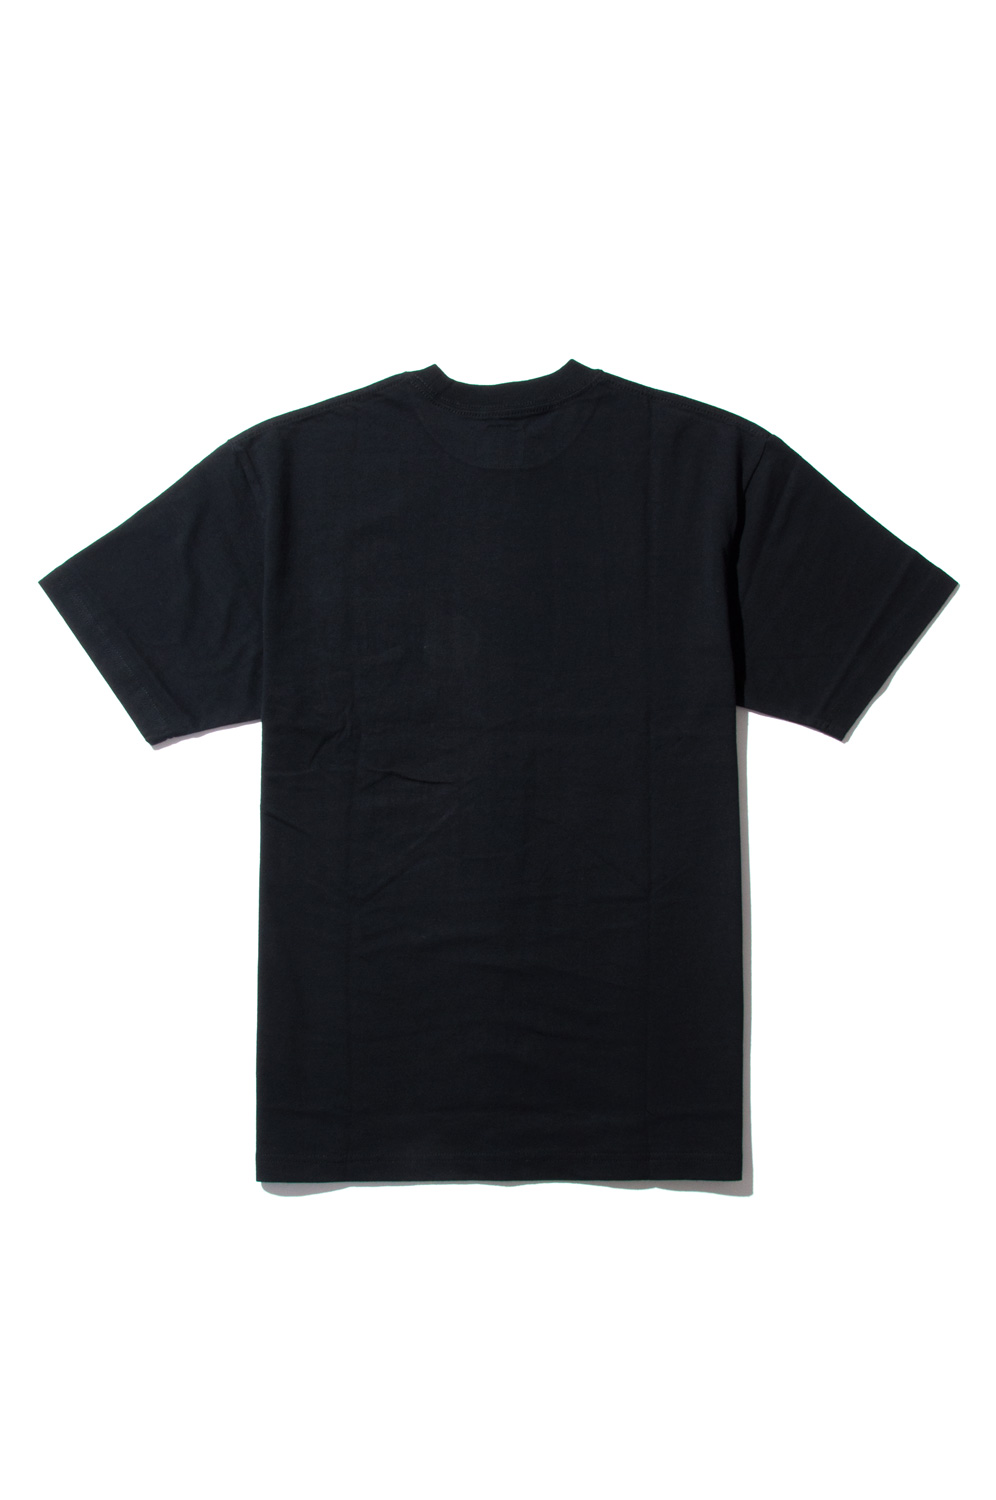 画像3: 【am】AM HEART NY POCKET TEE